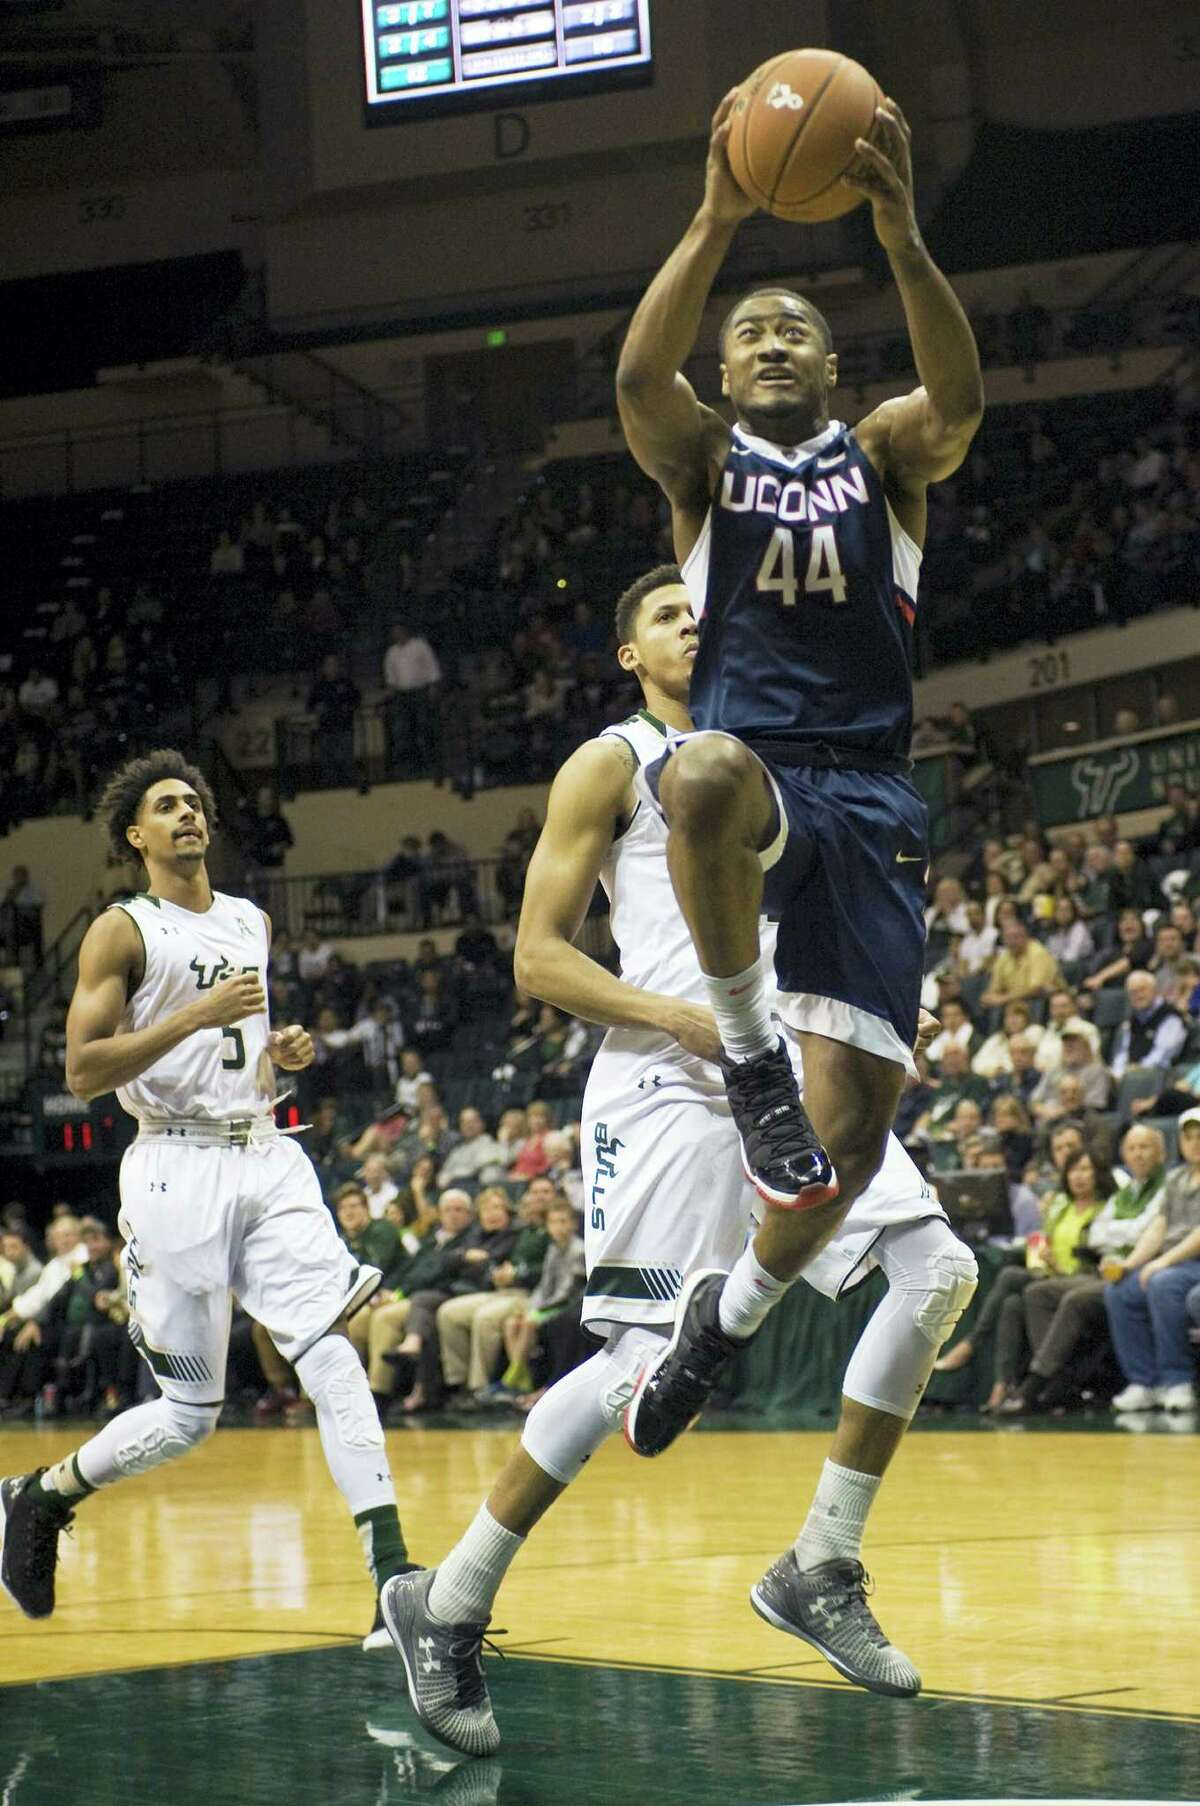 UConn's Rodney Purvis (44) scores past South Florida's Nehemias Morillo (5) and Angel Nunez, center, during the first half Thursday in Tampa, Fla.